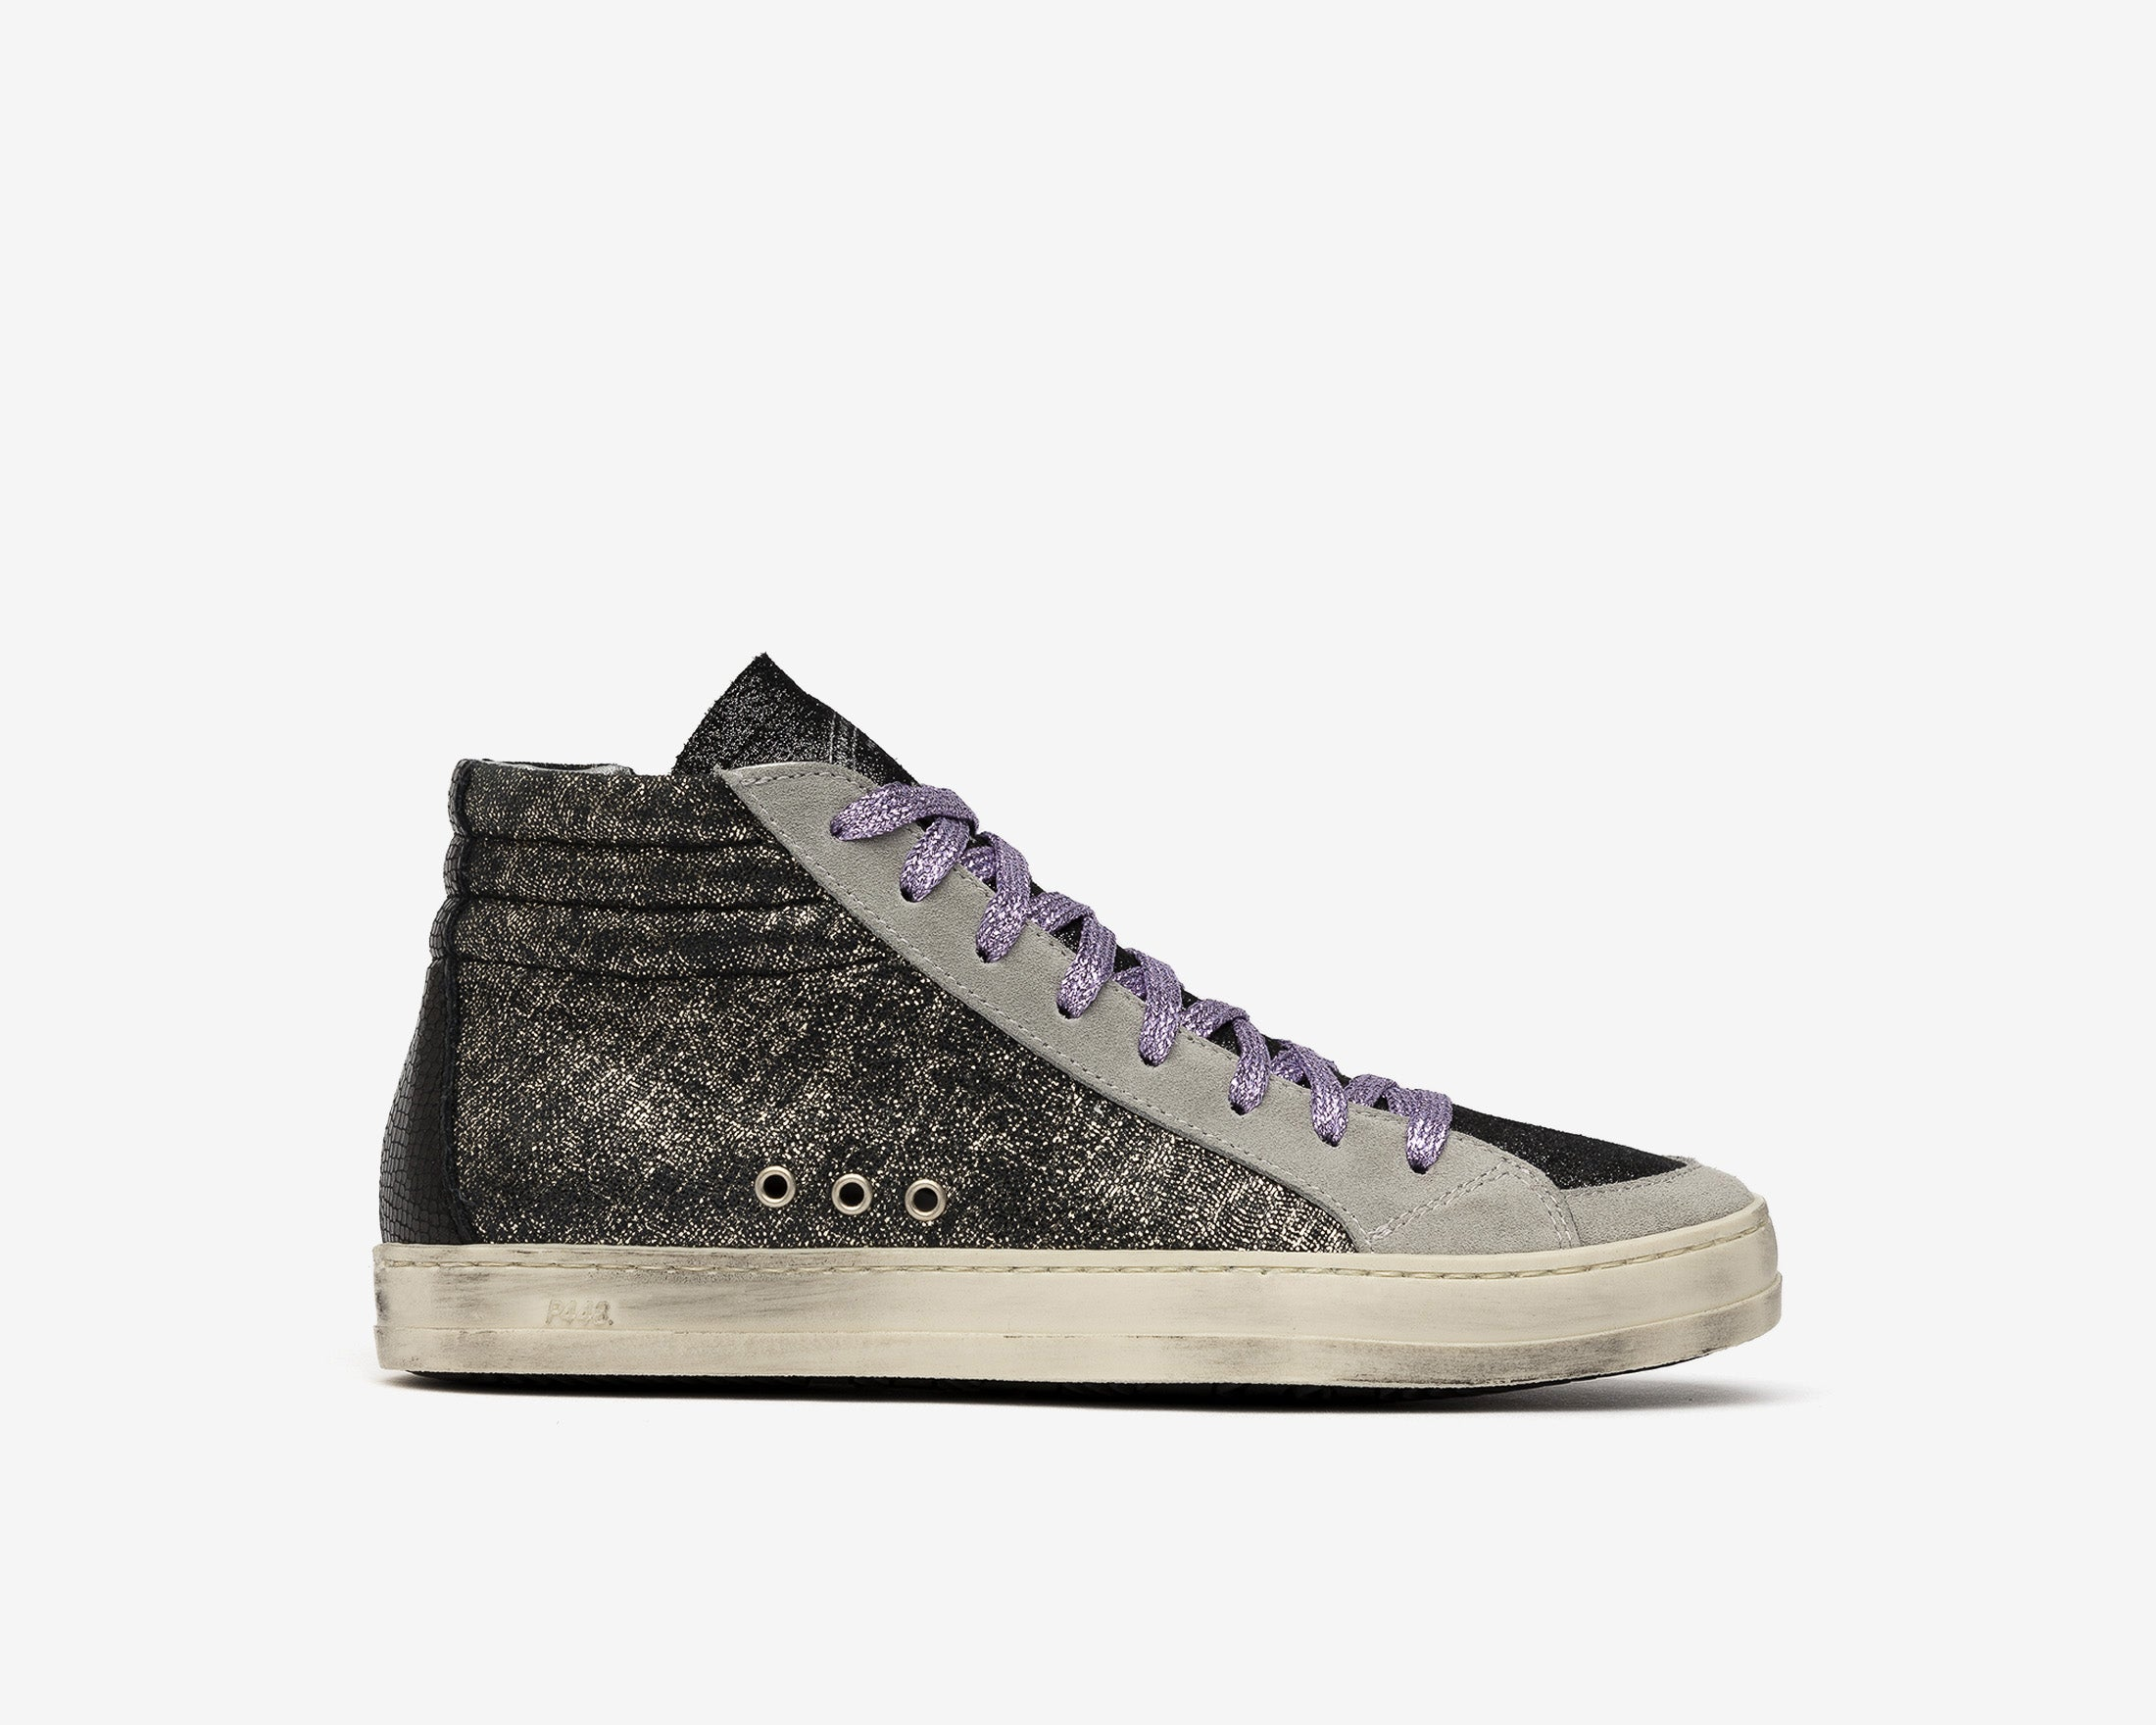 Skate High-Top Sneaker in Black/Loft - Profile